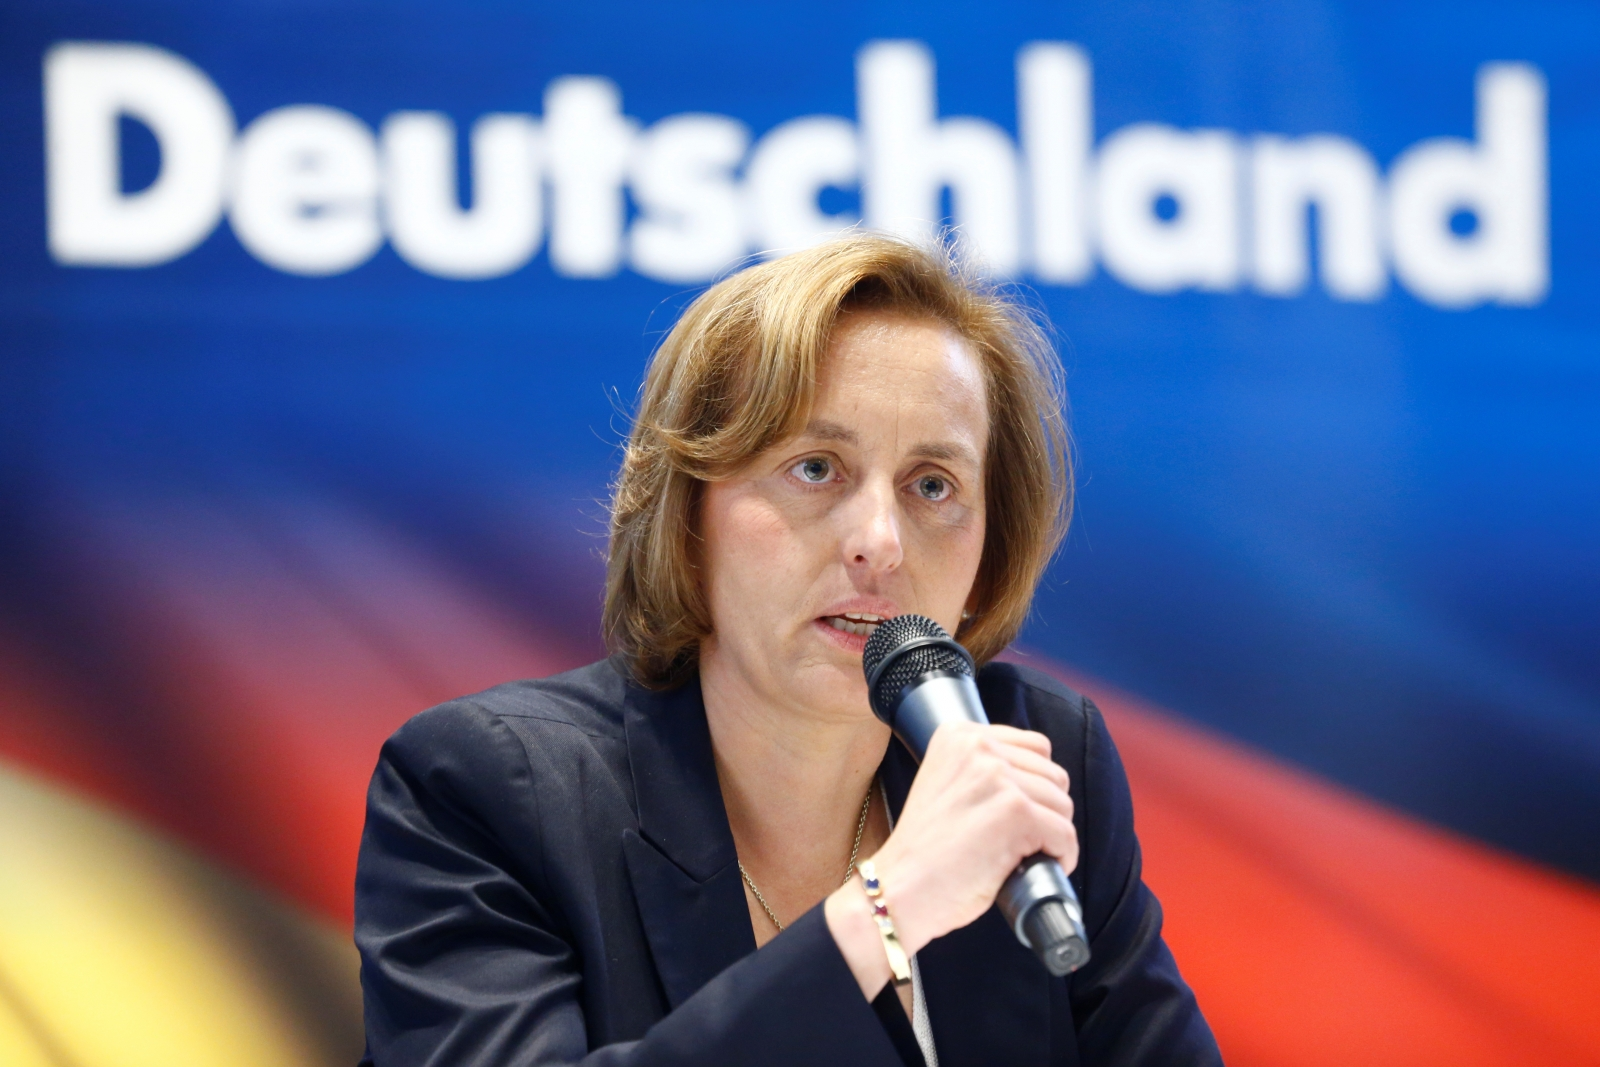 German lawmaker's anti-Muslim tweet prompts complaint